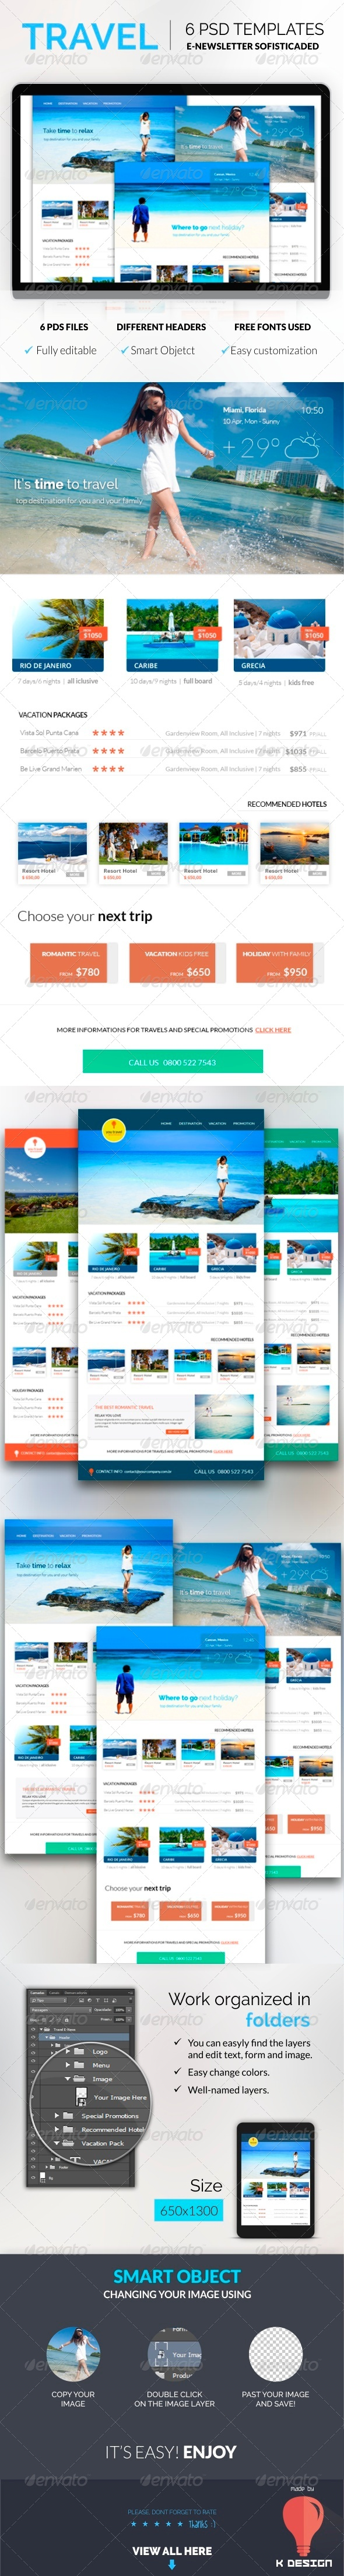 GraphicRiver Travel E-newsletter Template 8479183